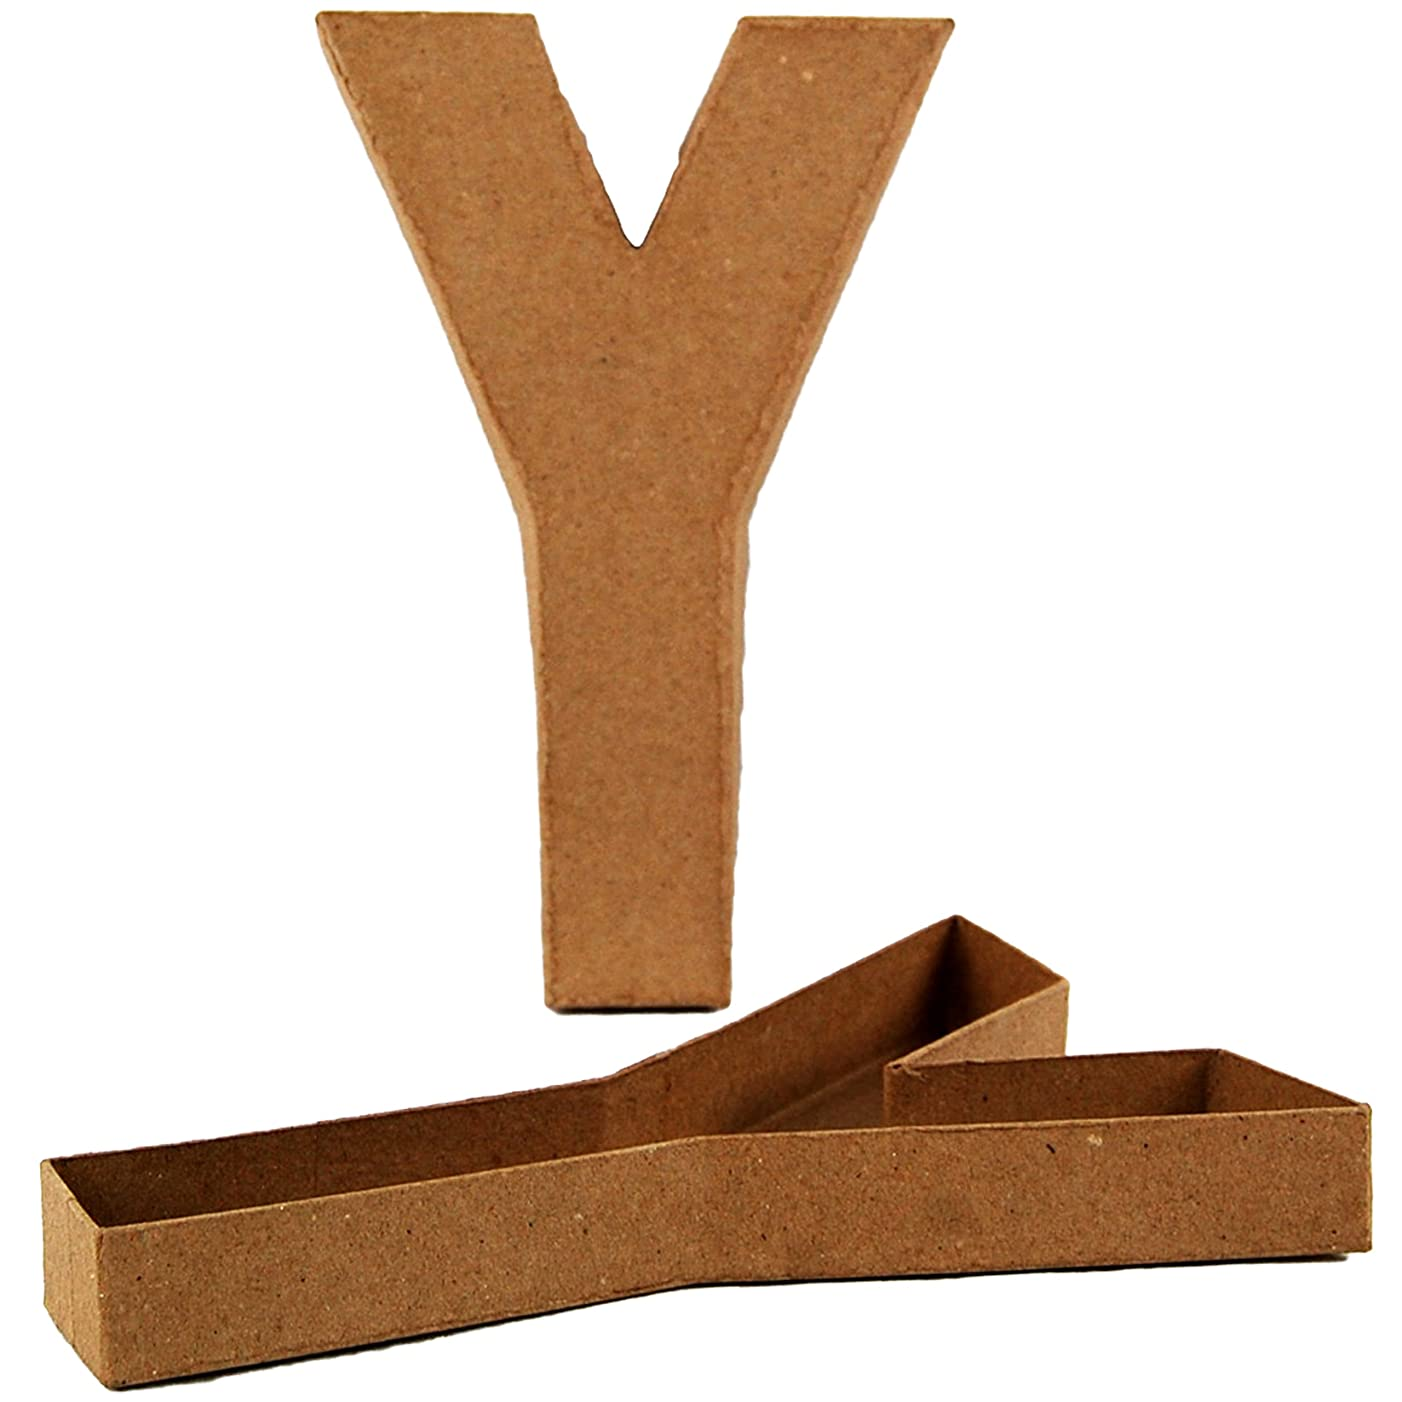 Country Love Crafts 8.25-inch/ 20.5cm Letter Y Shaped Box Papier Mache